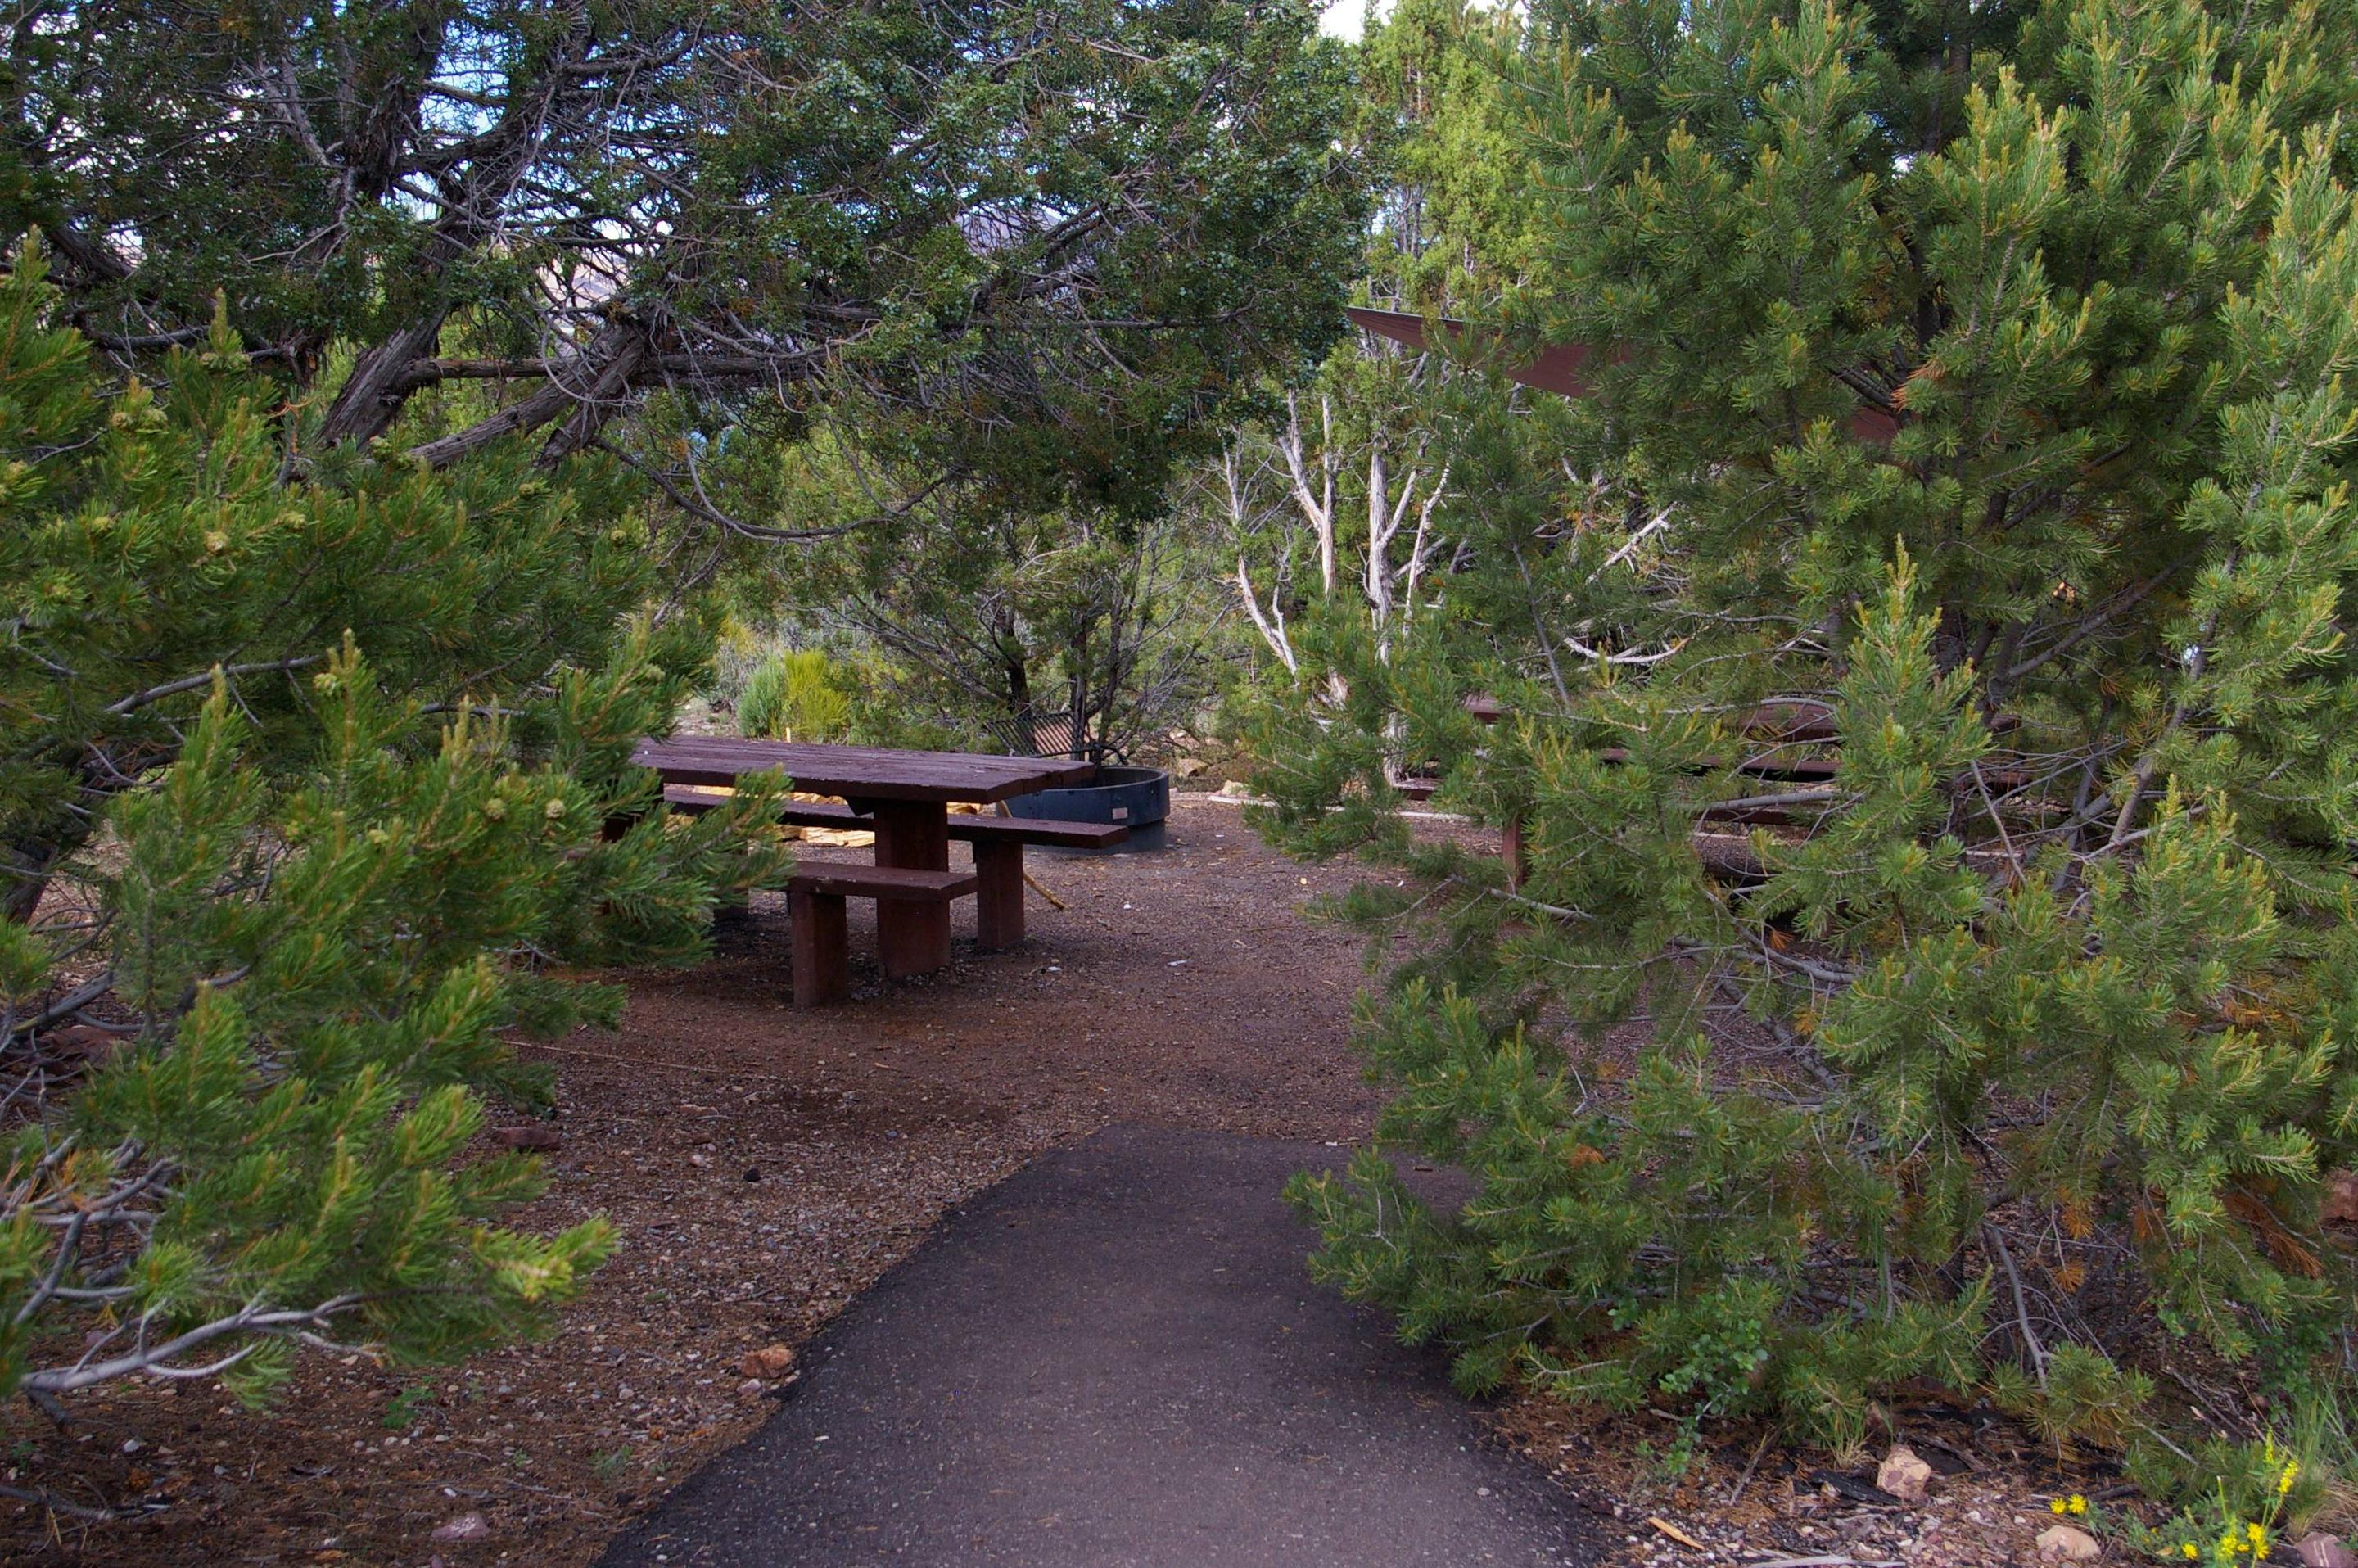 Picnic table tuck away in the middle of a group of trees. An asphalt path leads up to the area.Cedar Springs Campground